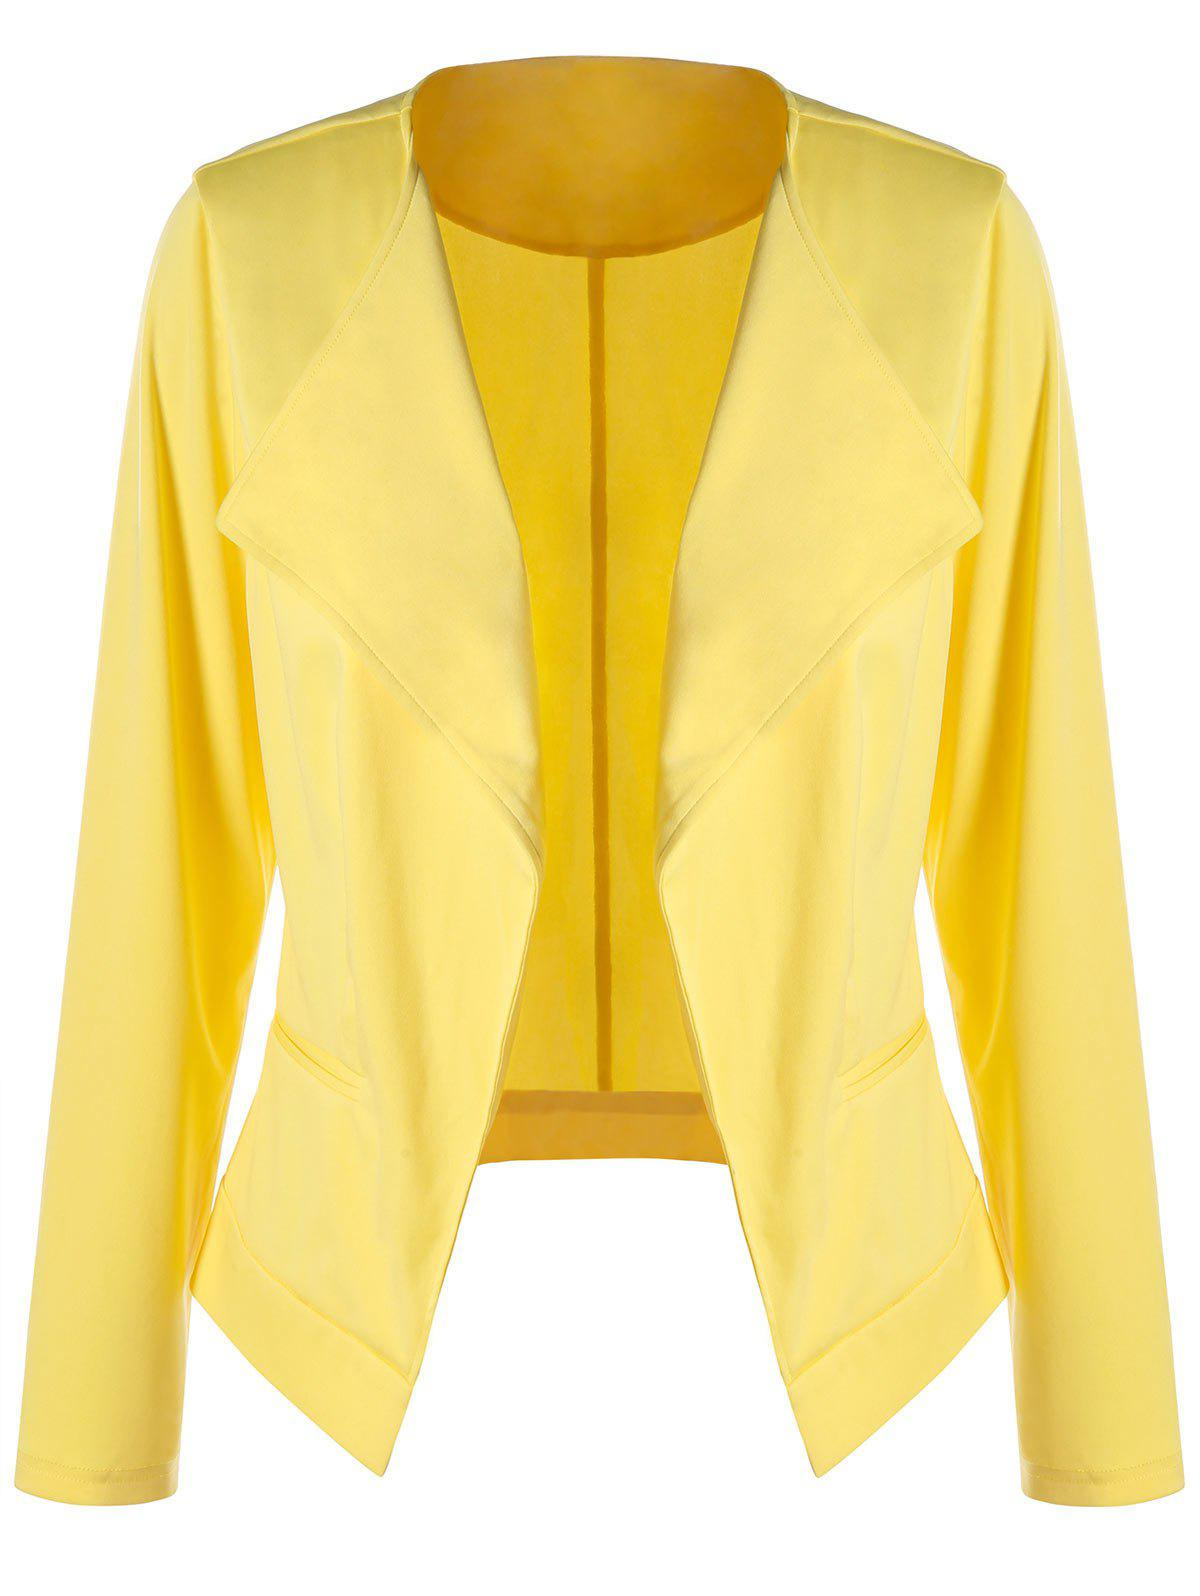 Plus Size Waterfall BlazerWOMEN<br><br>Size: 4XL; Color: YELLOW; Clothes Type: Jackets; Material: Polyester,Spandex; Type: Slim; Shirt Length: Regular; Sleeve Length: Full; Collar: Collarless; Pattern Type: Solid; Style: Fashion; Season: Fall,Spring,Summer; Weight: 0.3200kg; Package Contents: 1 x Blazer;